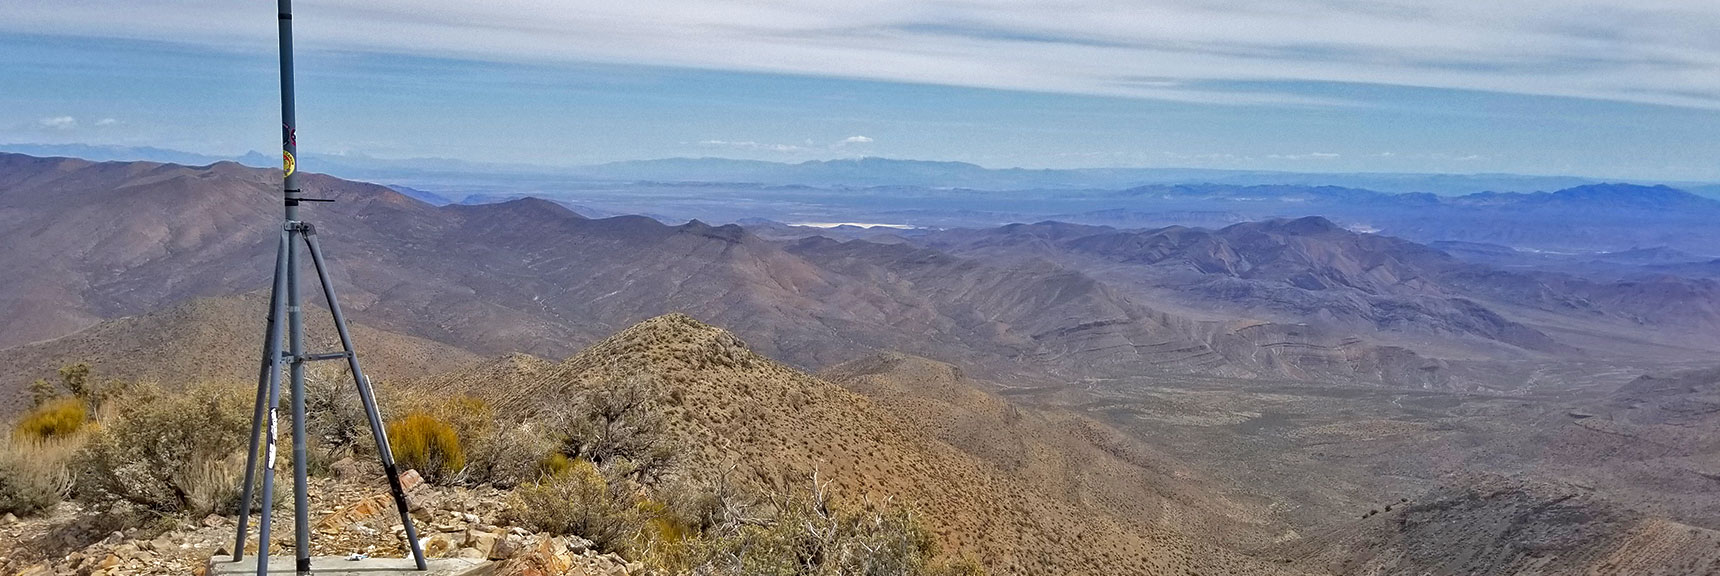 View Southeast from Gass Peak Eastern Summit | Gass Peak Eastern Summit Ultra-marathon Adventure, Nevada